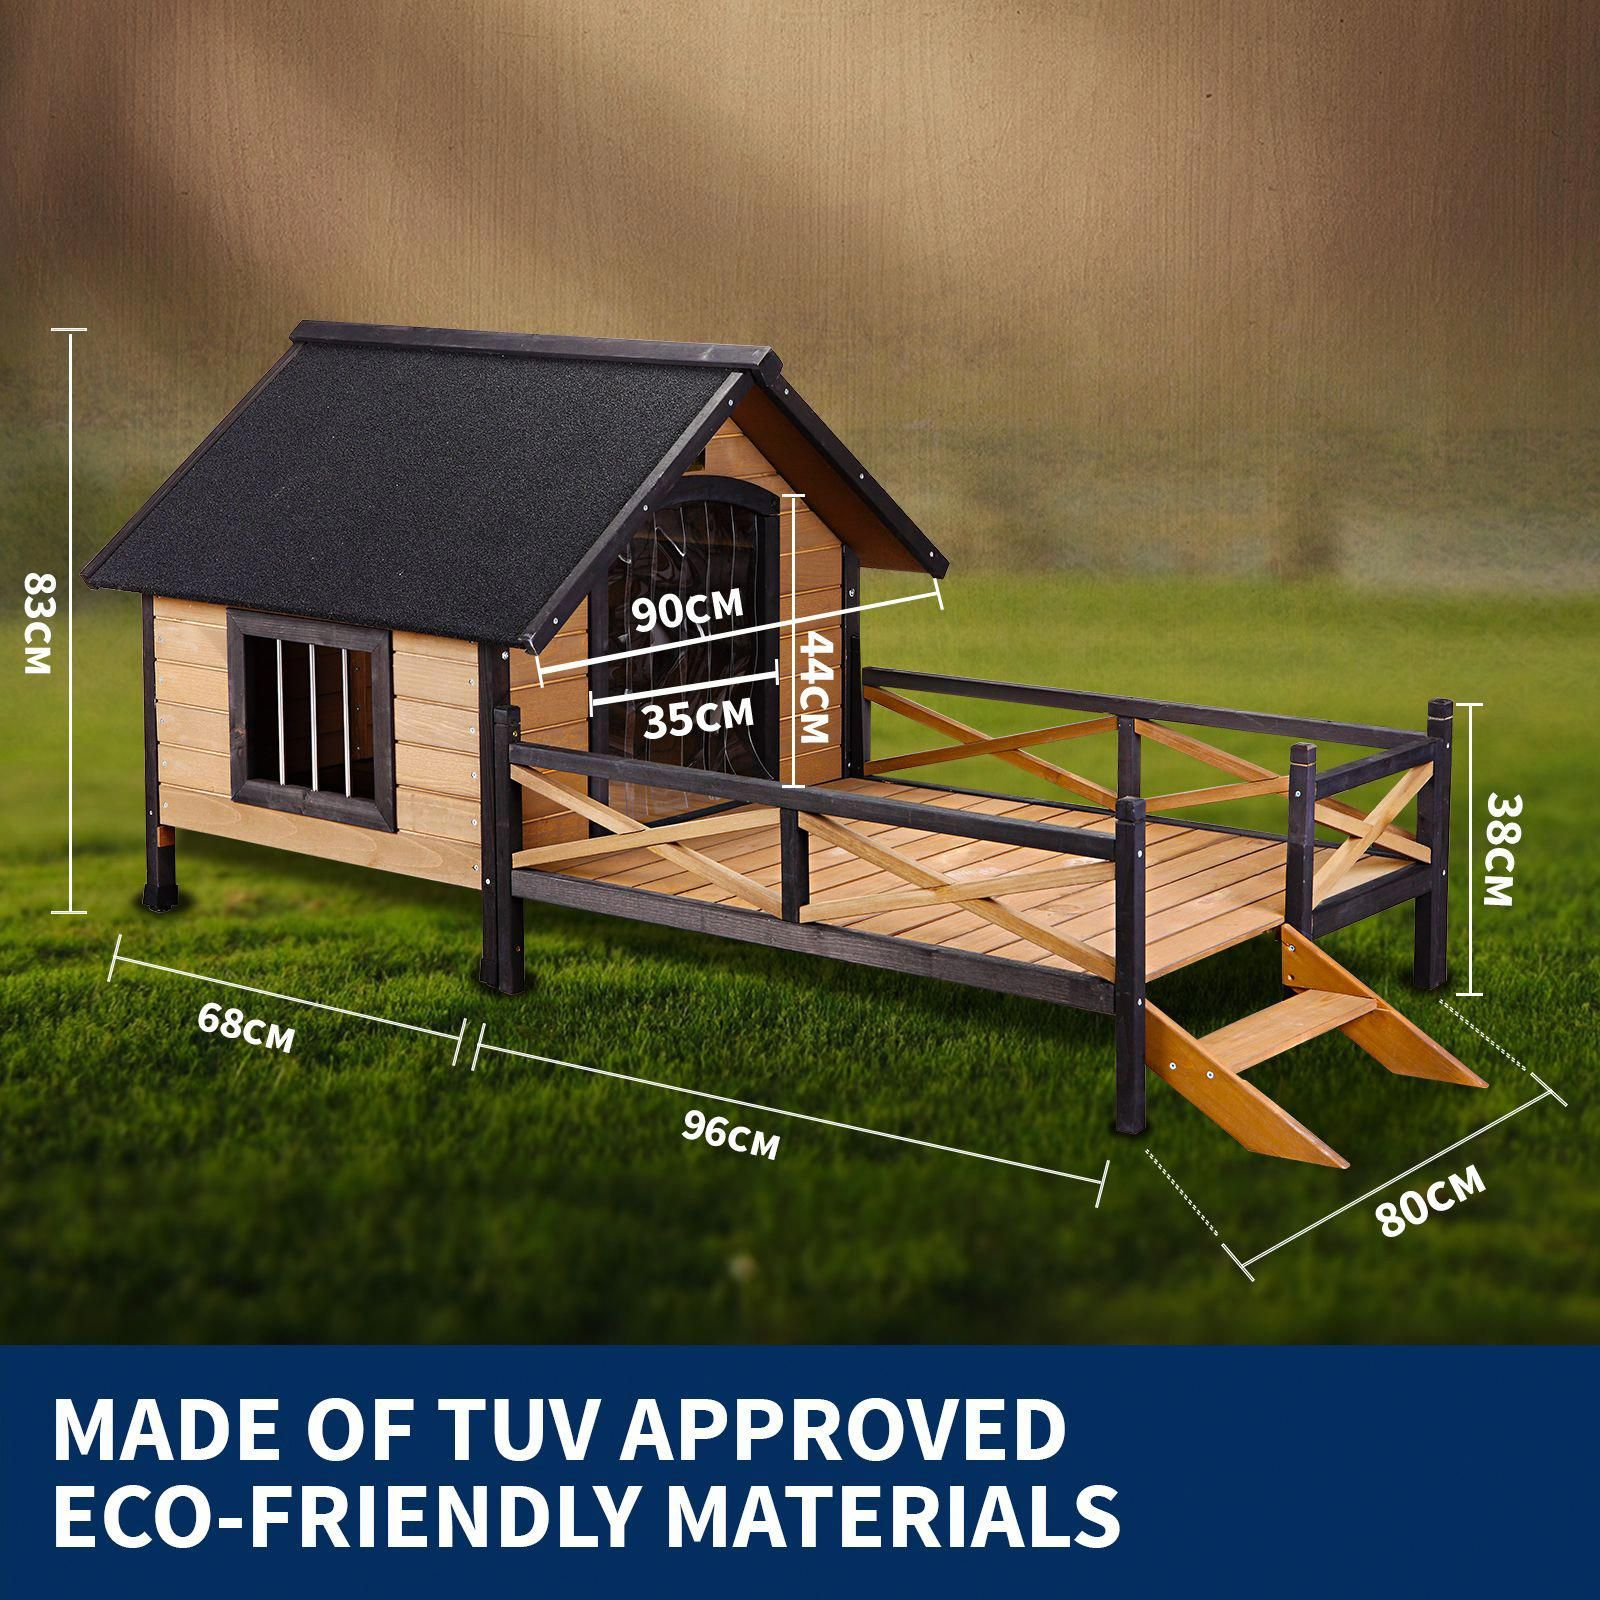 Large view popularwoodprojectsproducts dog house diy